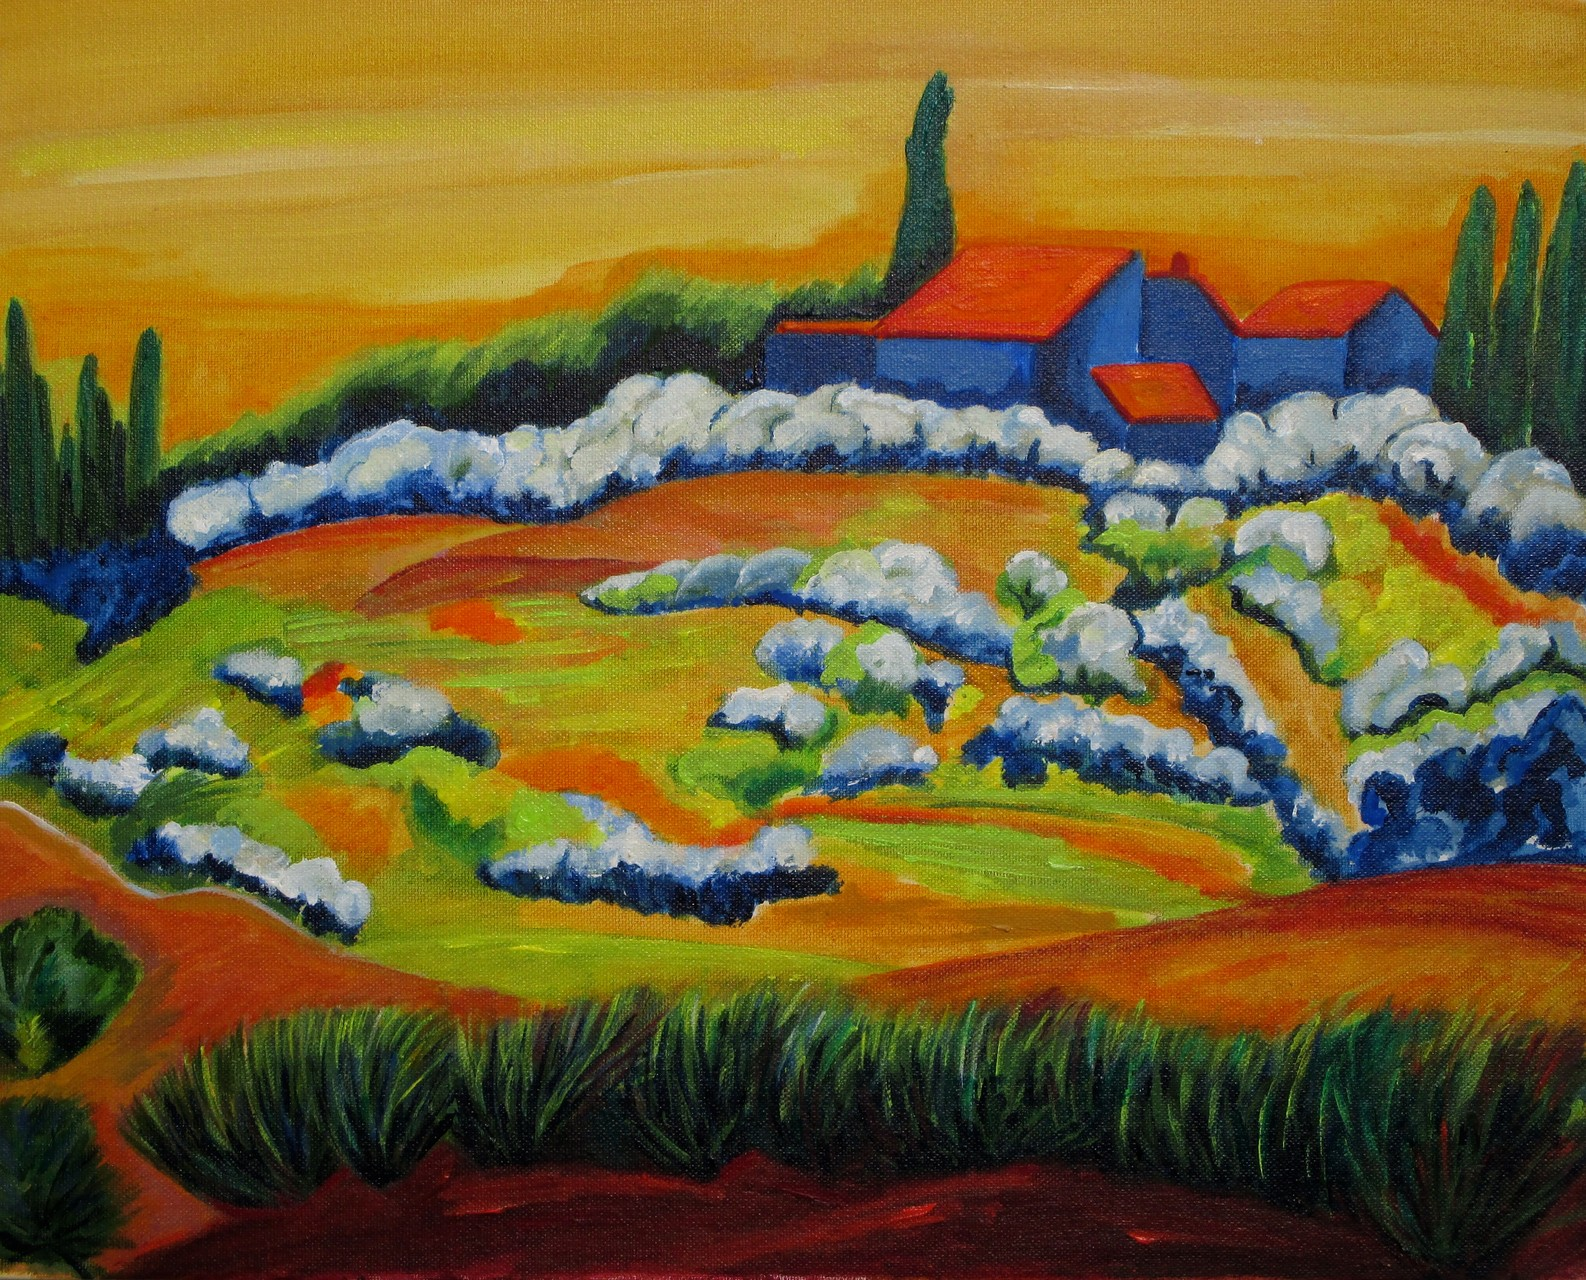 Tuscan Hills, oil on canvas, 20 x 16